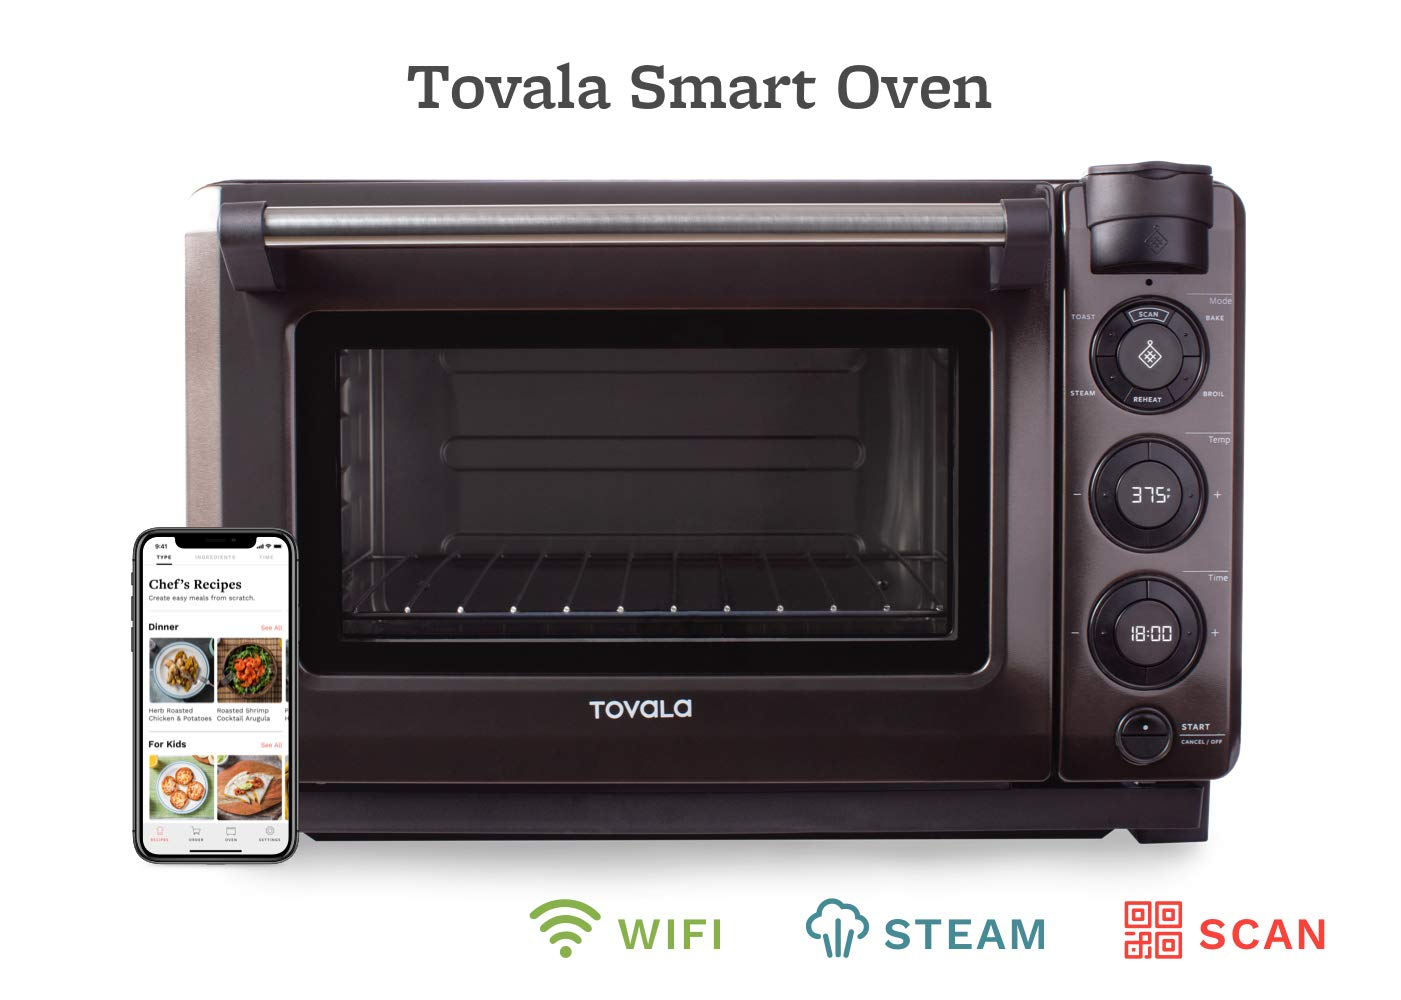 Tovala Gen 2 Smart Steam Oven | Countertop WiFi Oven | 5 Mode Programmable Oven | Toast, Steam, Bake, Broil and Reheat | Black & Stainless Steel Convection Oven by Tovala